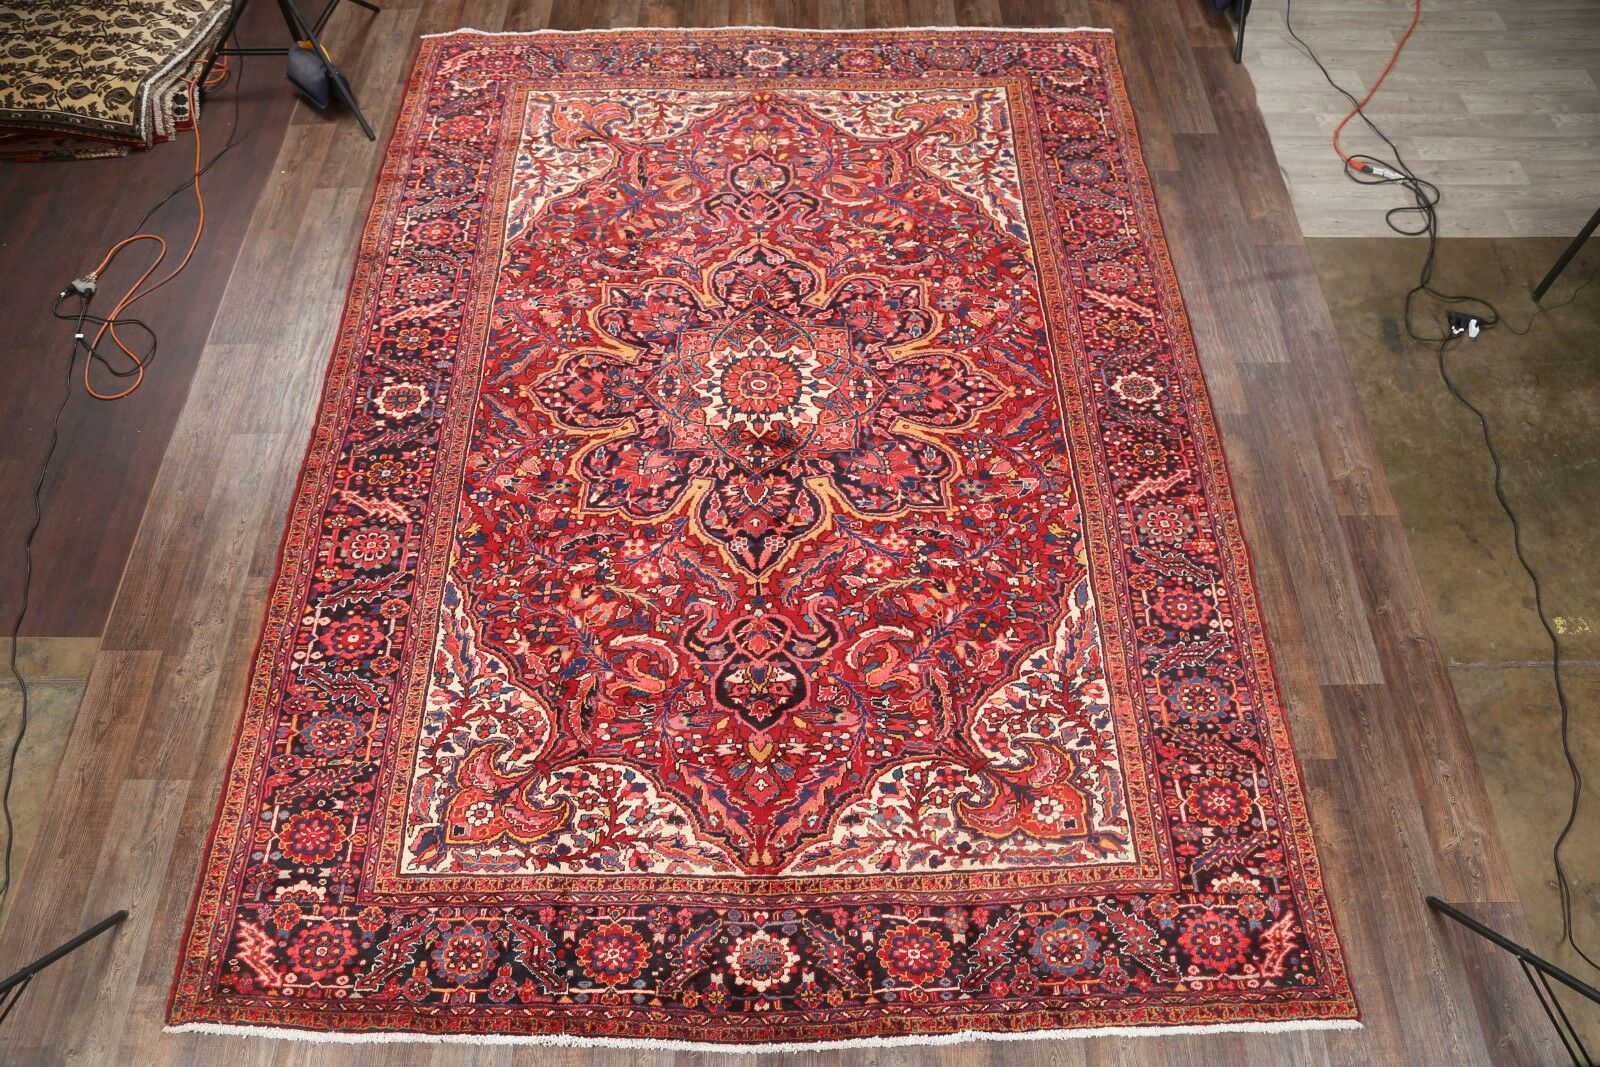 One-of-a-Kind Classical Heriz Persian Traditional Vintage Hand-Knotted 9'10